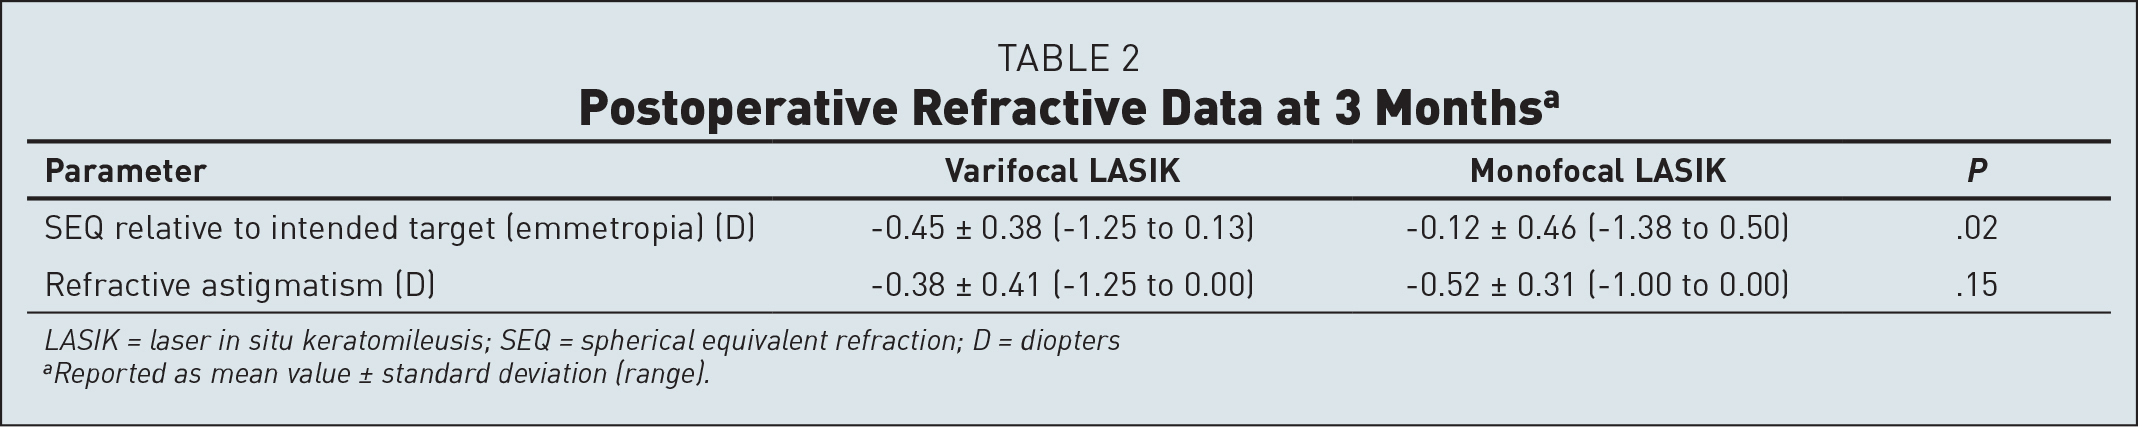 Postoperative Refractive Data at 3 Monthsa